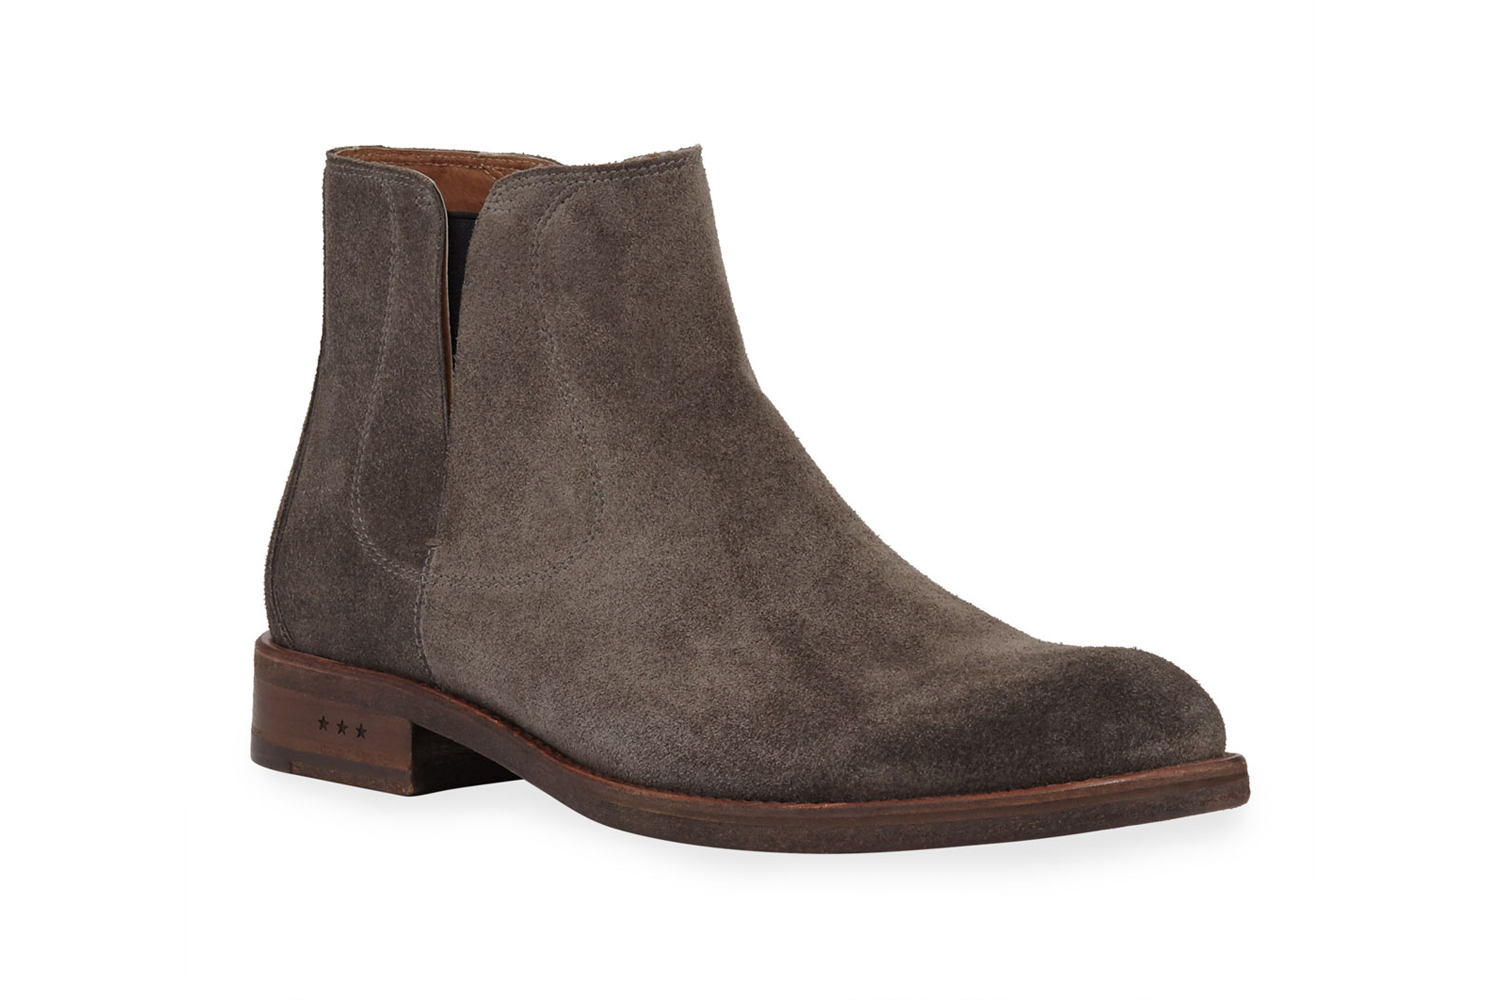 Waverly Covered Chelsea Boots John Varvatos